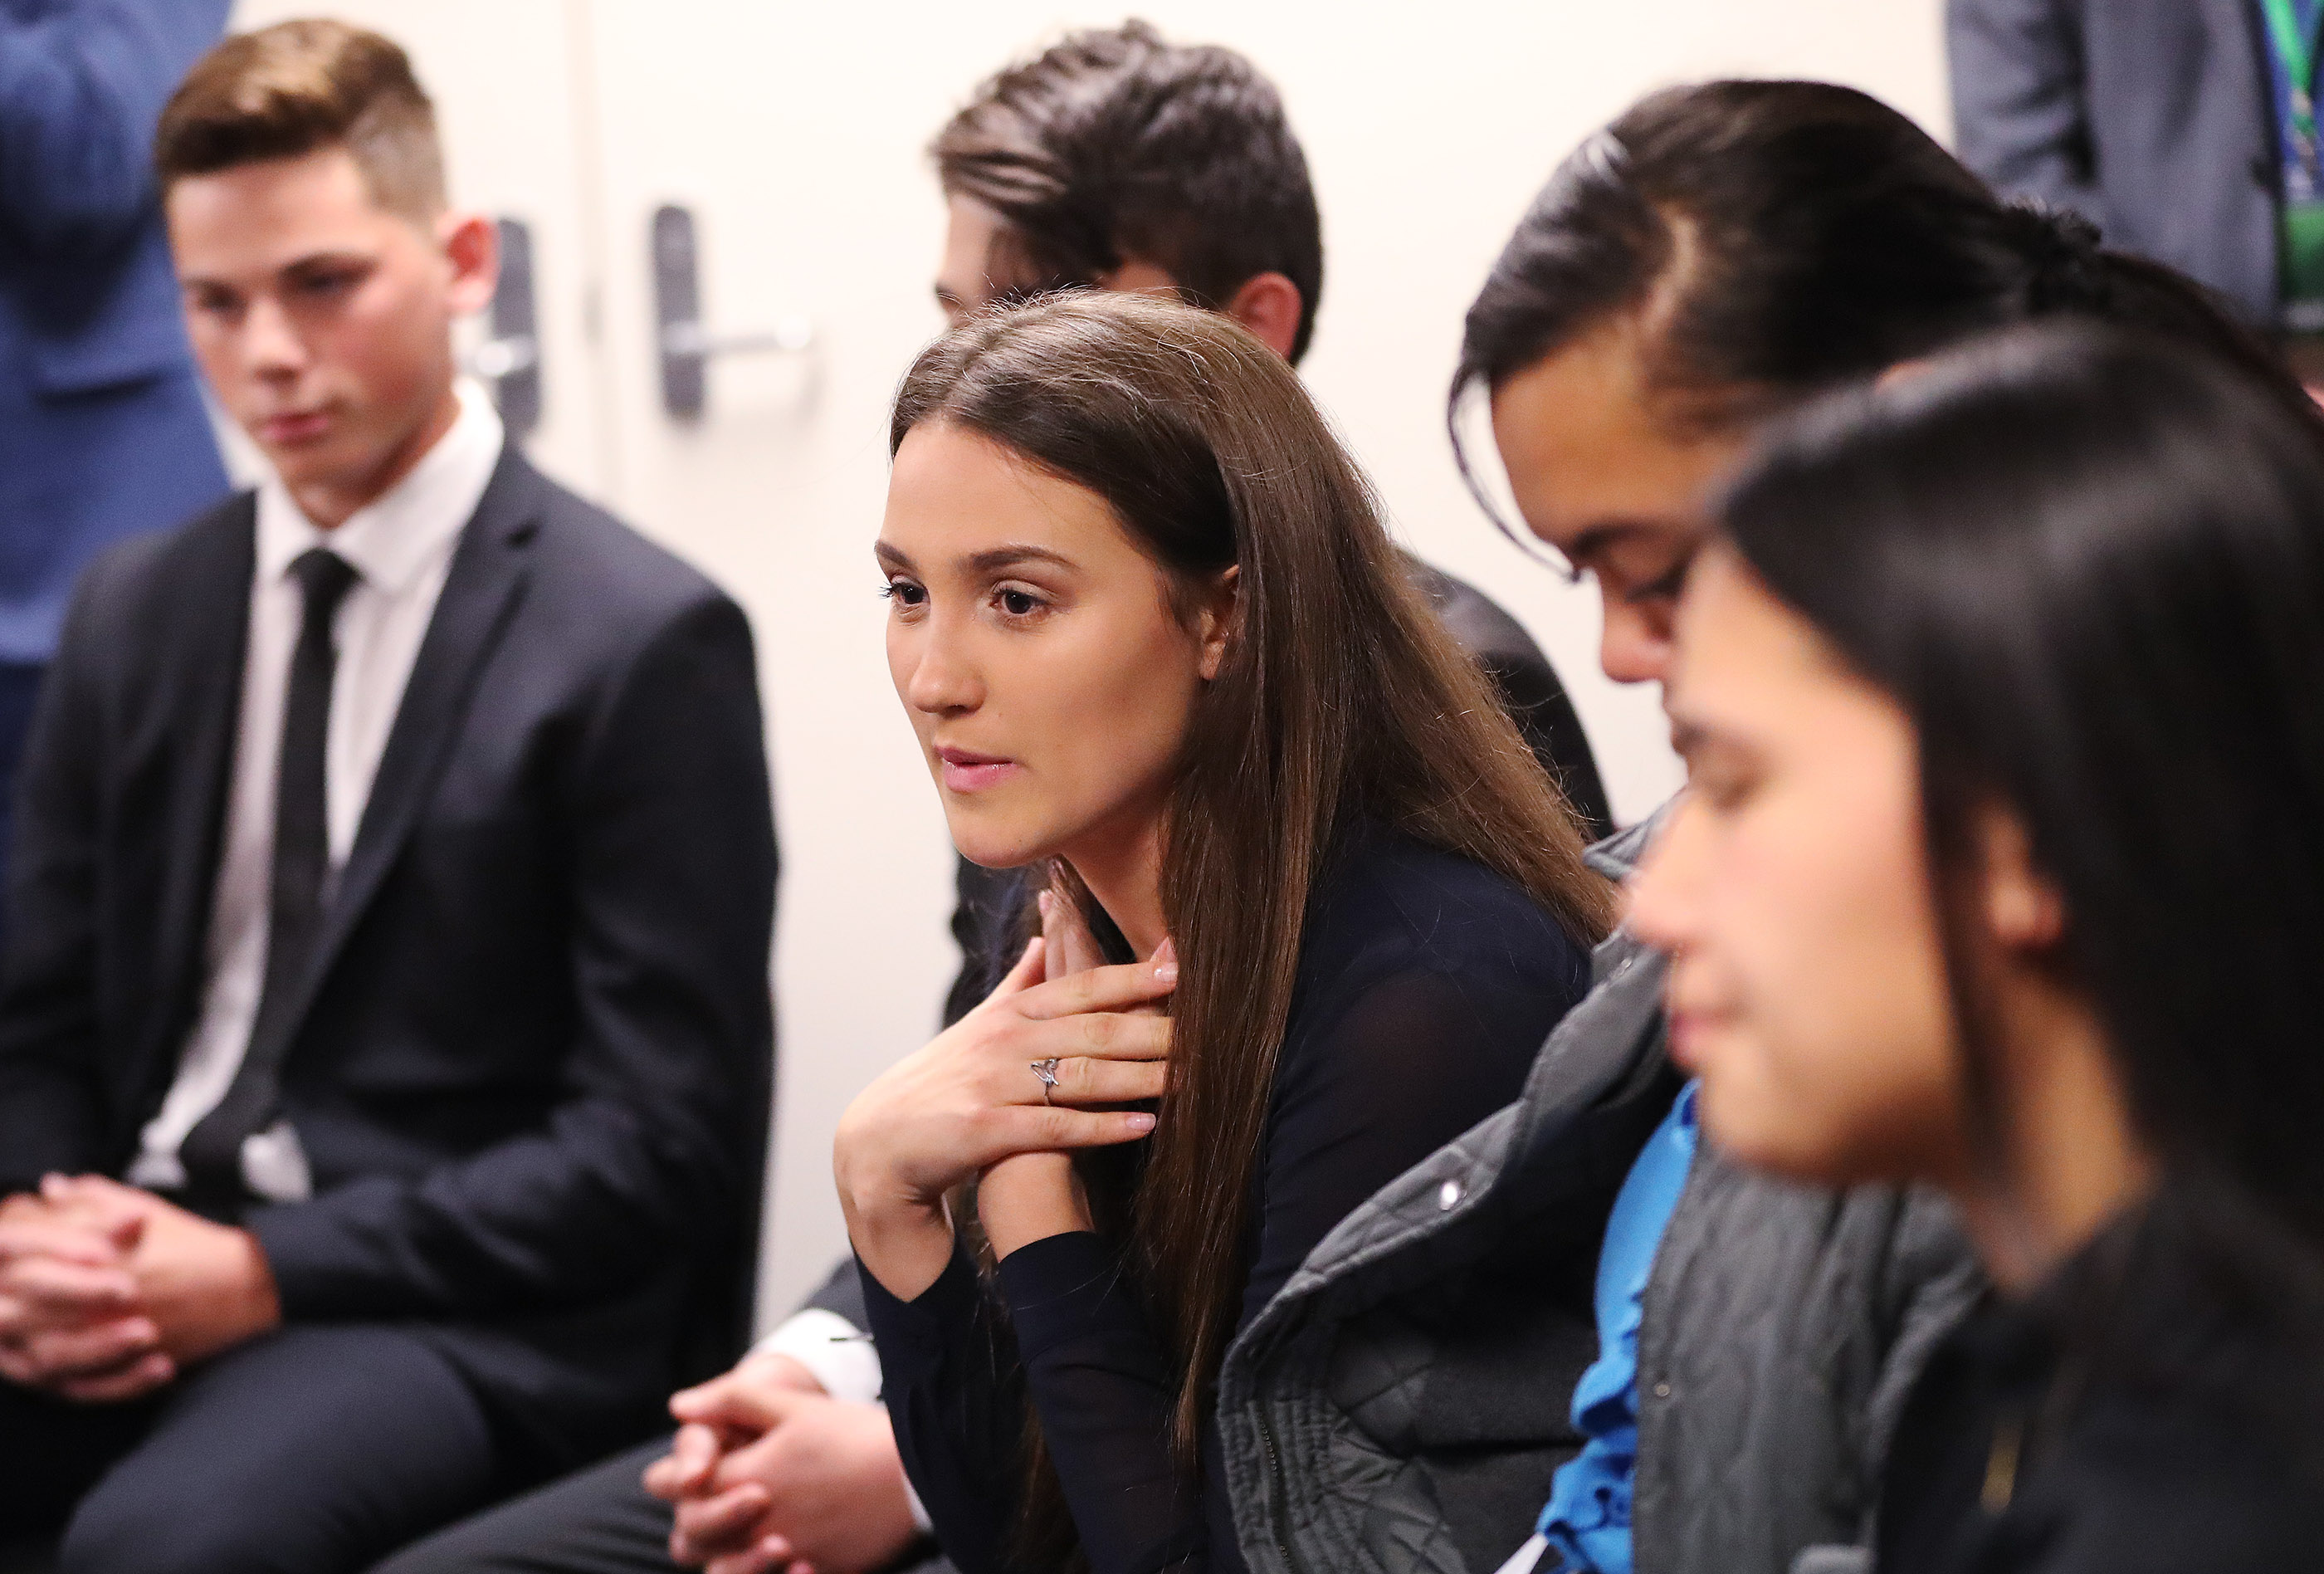 Emma Ormsby asks President Russell M. Nelson of The Church of Jesus Christ of Latter-day Saints a question during a youth meeting in Auckland, New Zealand, on May 21, 2019.